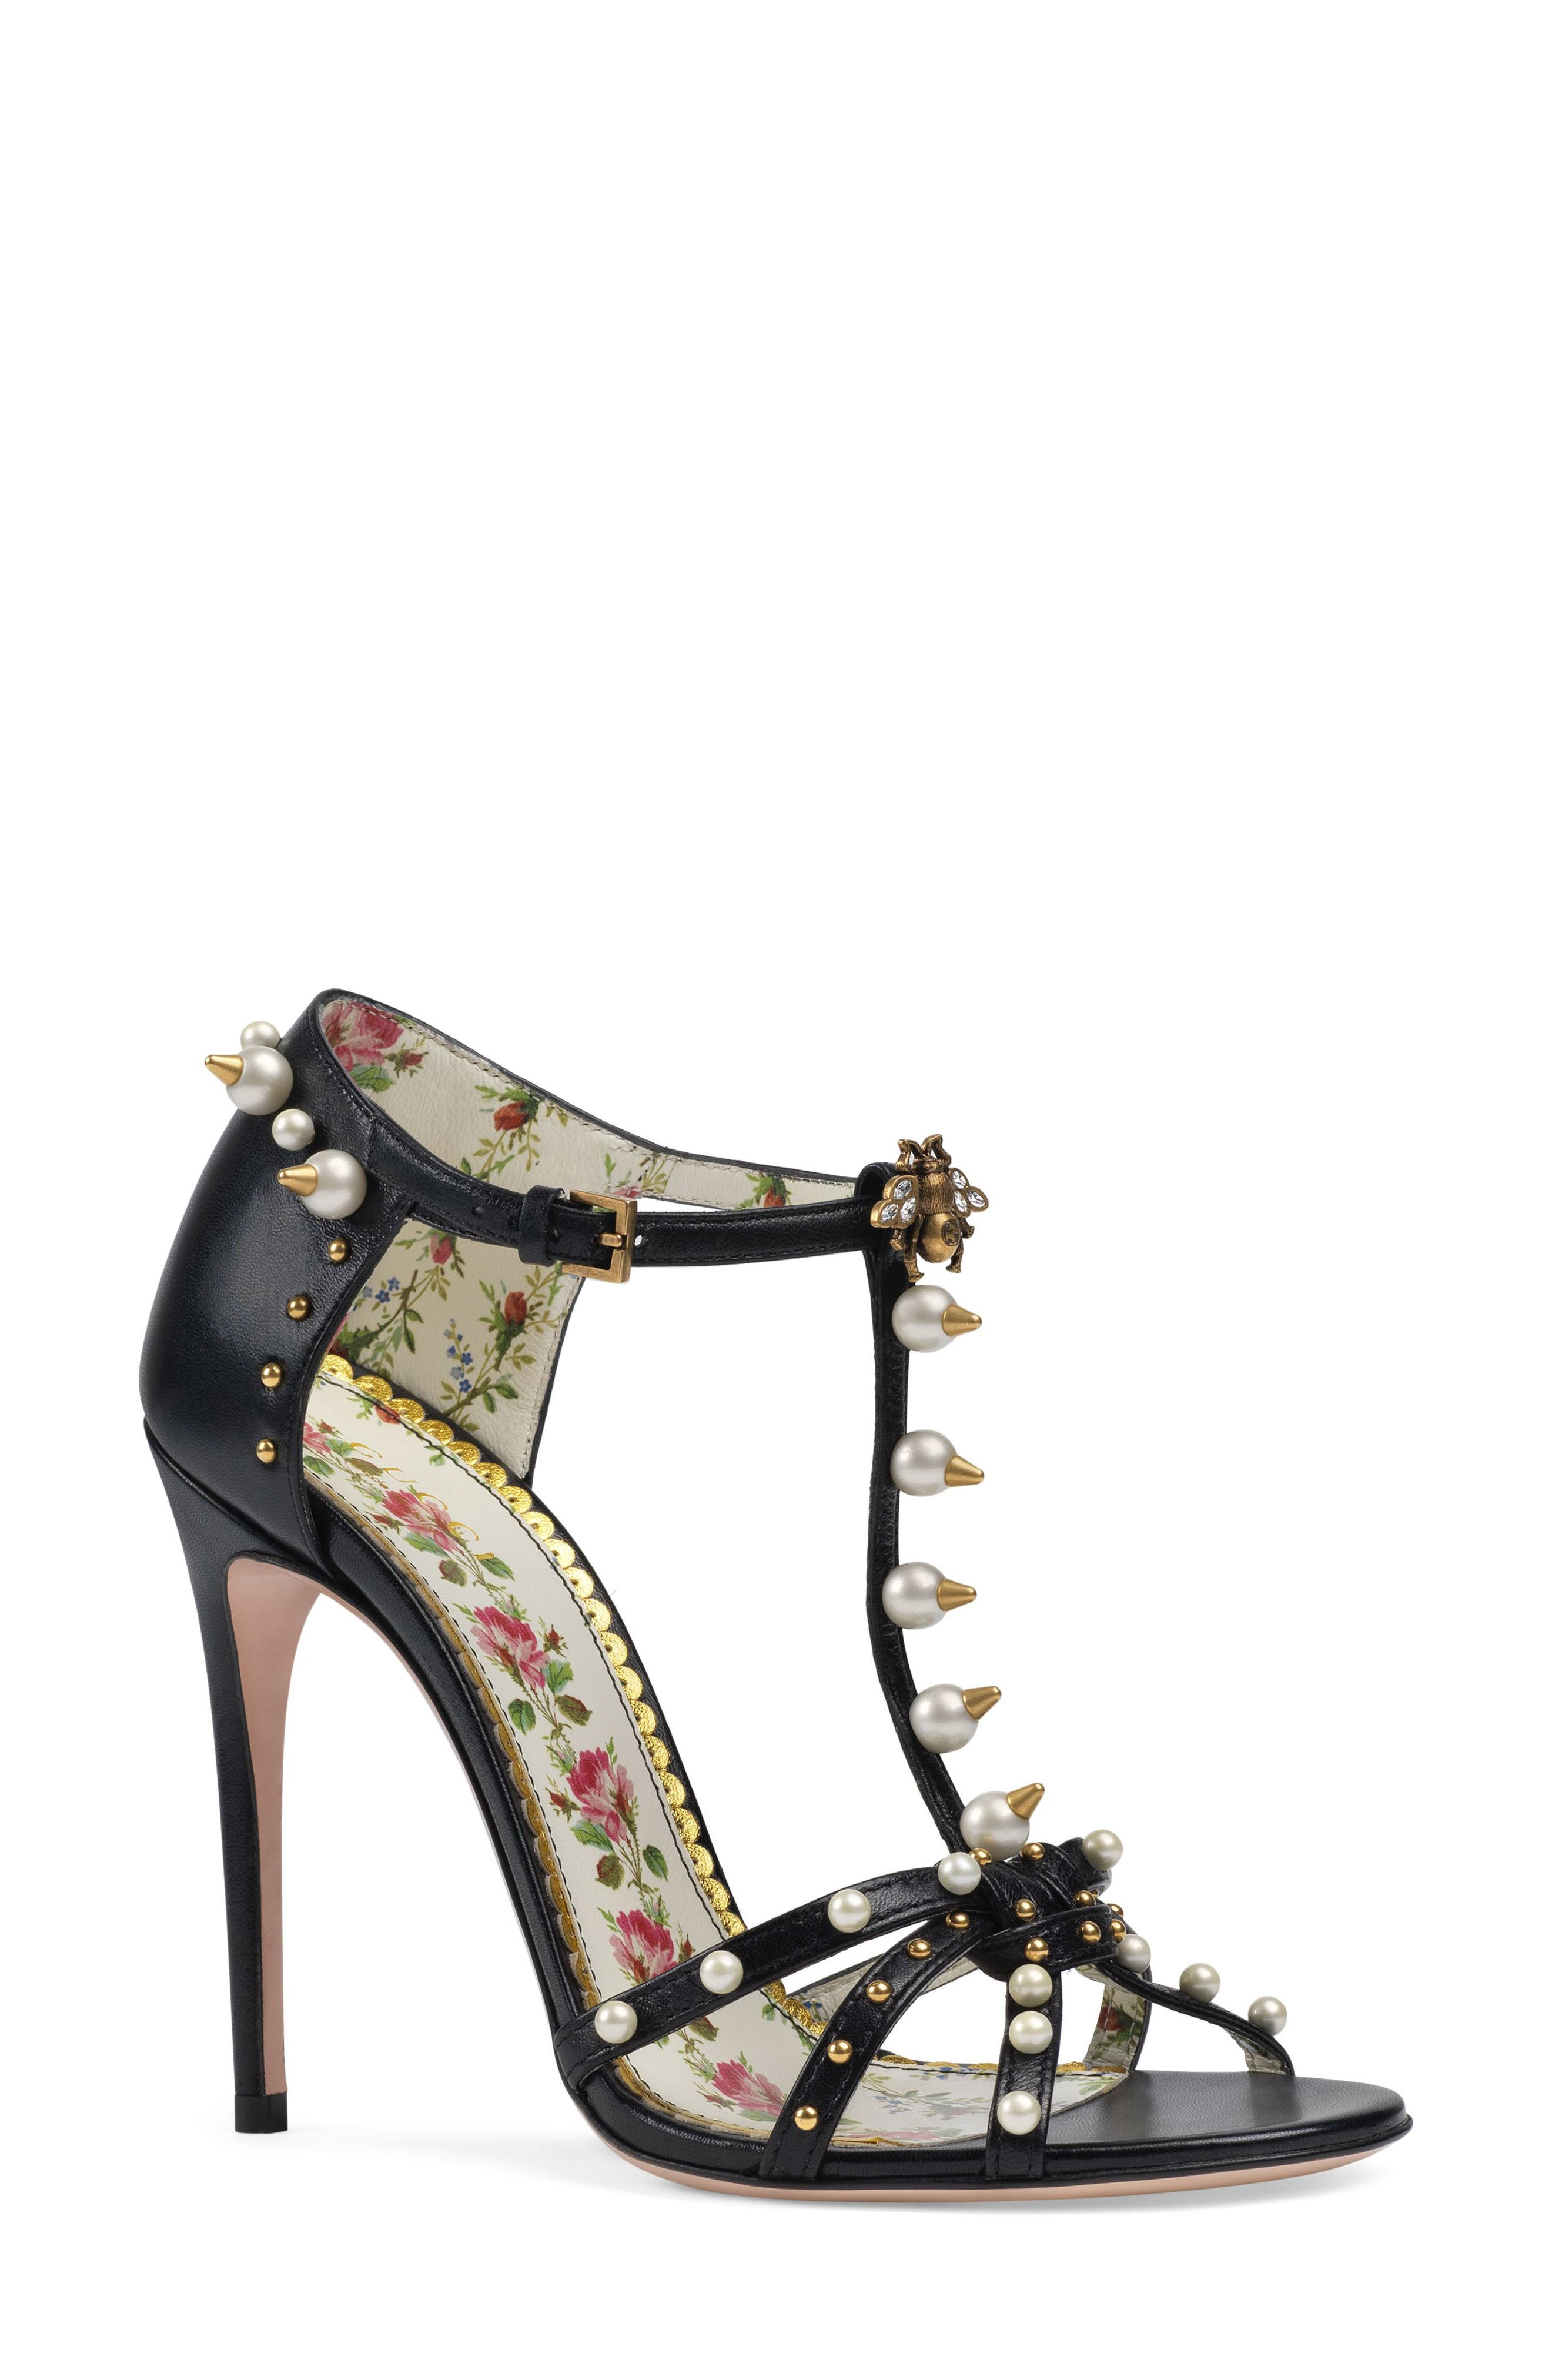 Alternate Image 1 Selected - Gucci Regina Embellished T-Strap Sandal (Women)